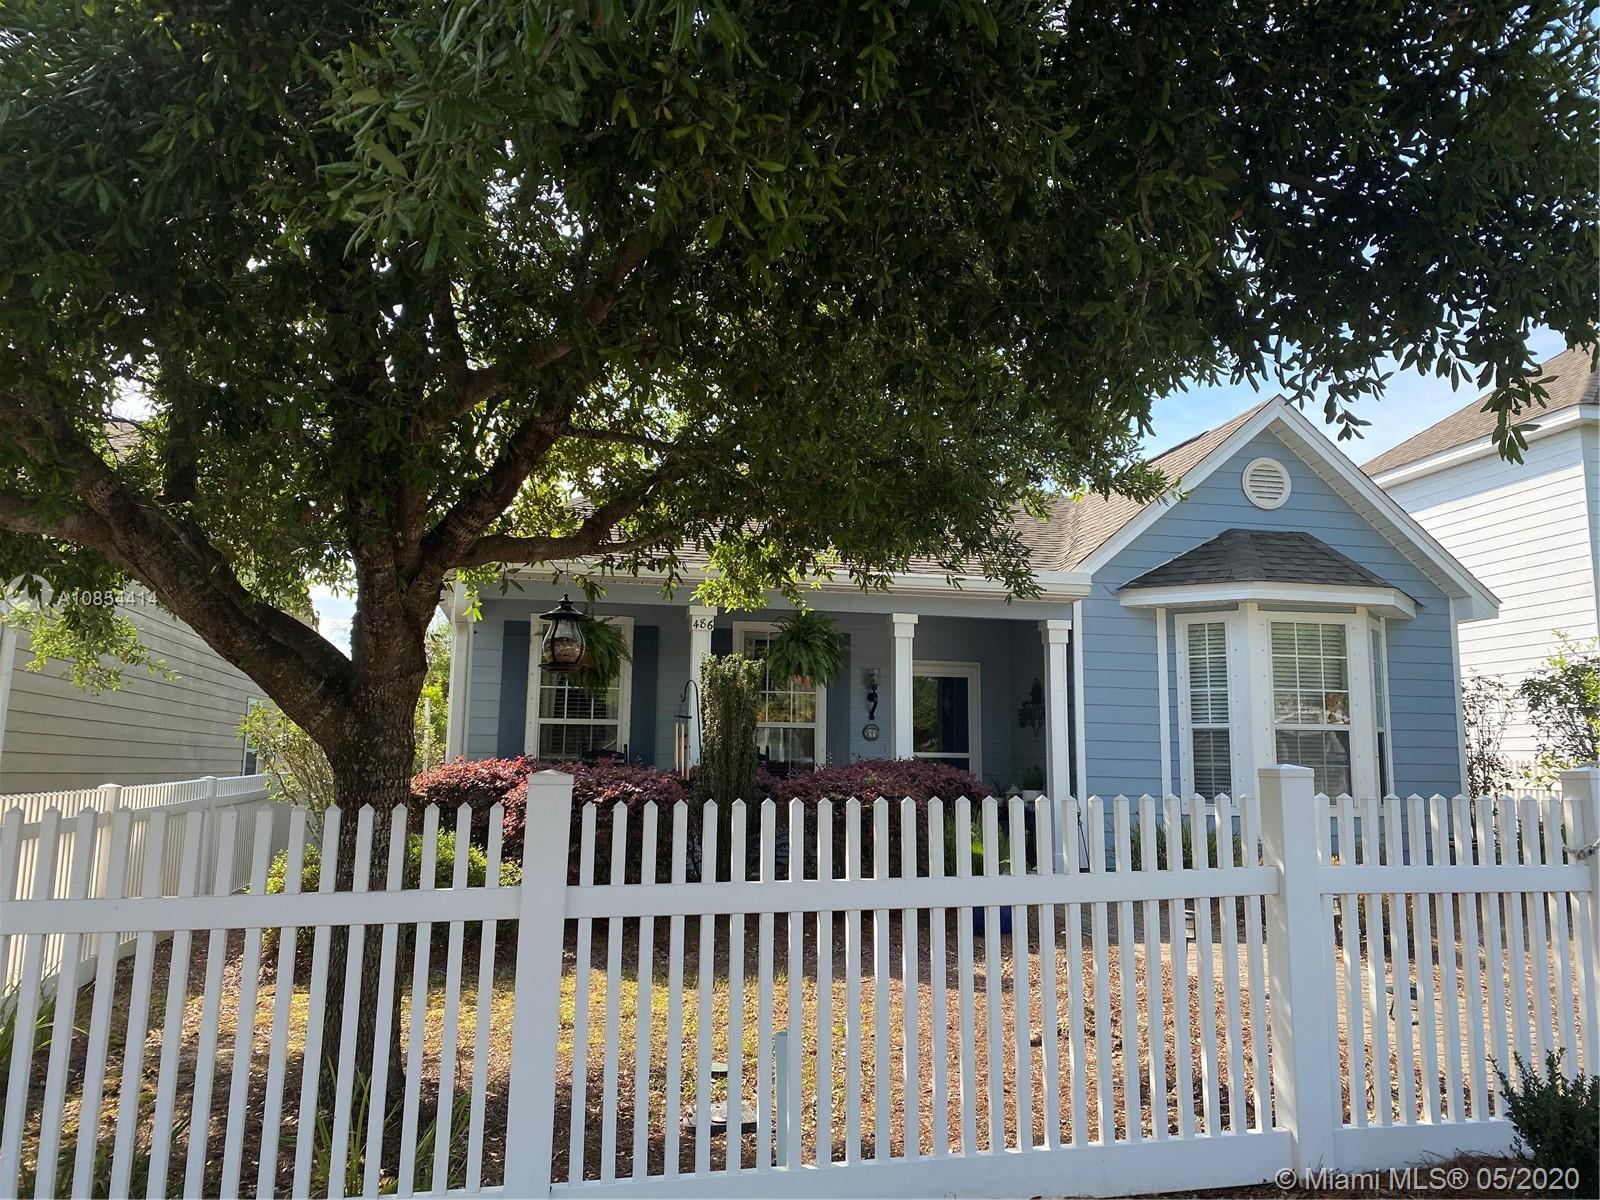 486 Fanny Ann Way, Other City - In The State Of Florida, Florida 32439, 3 Bedrooms Bedrooms, 7 Rooms Rooms,2 BathroomsBathrooms,Residential,For Sale,486 Fanny Ann Way,A10854414